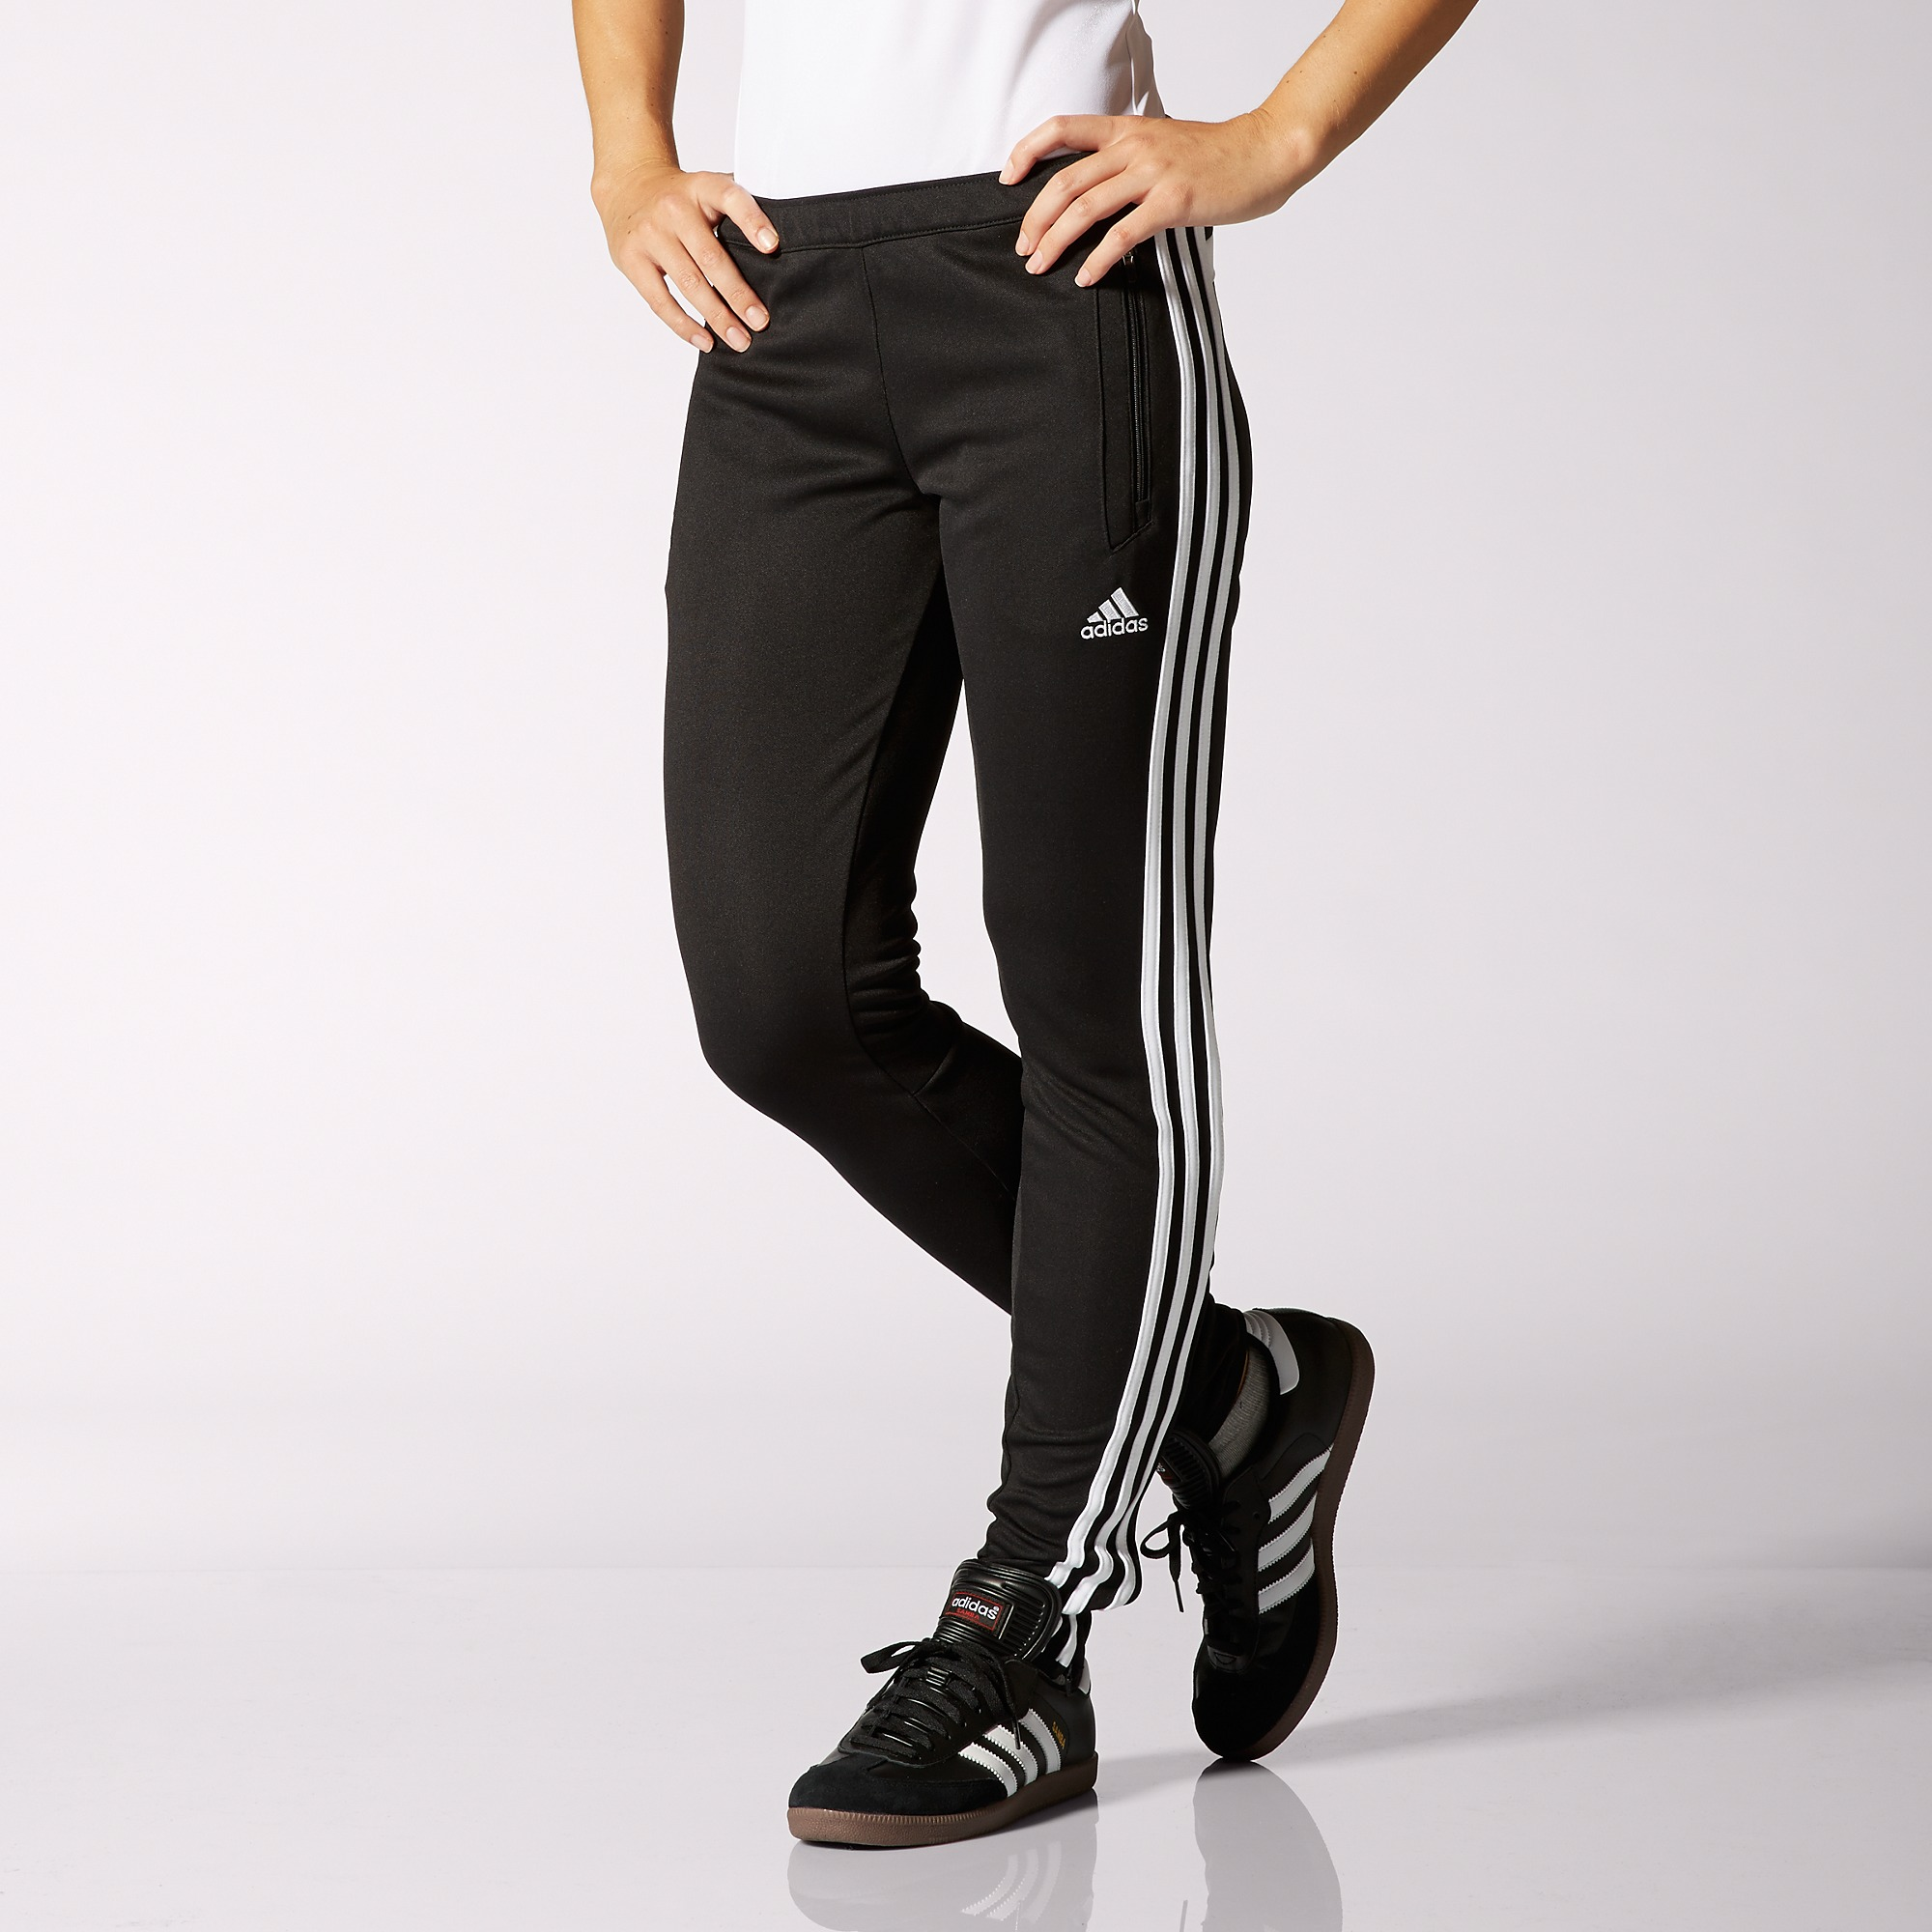 Original Adidas Soccer Pants Tumblr Adidas Soccer Quotes Tumblr  Album On